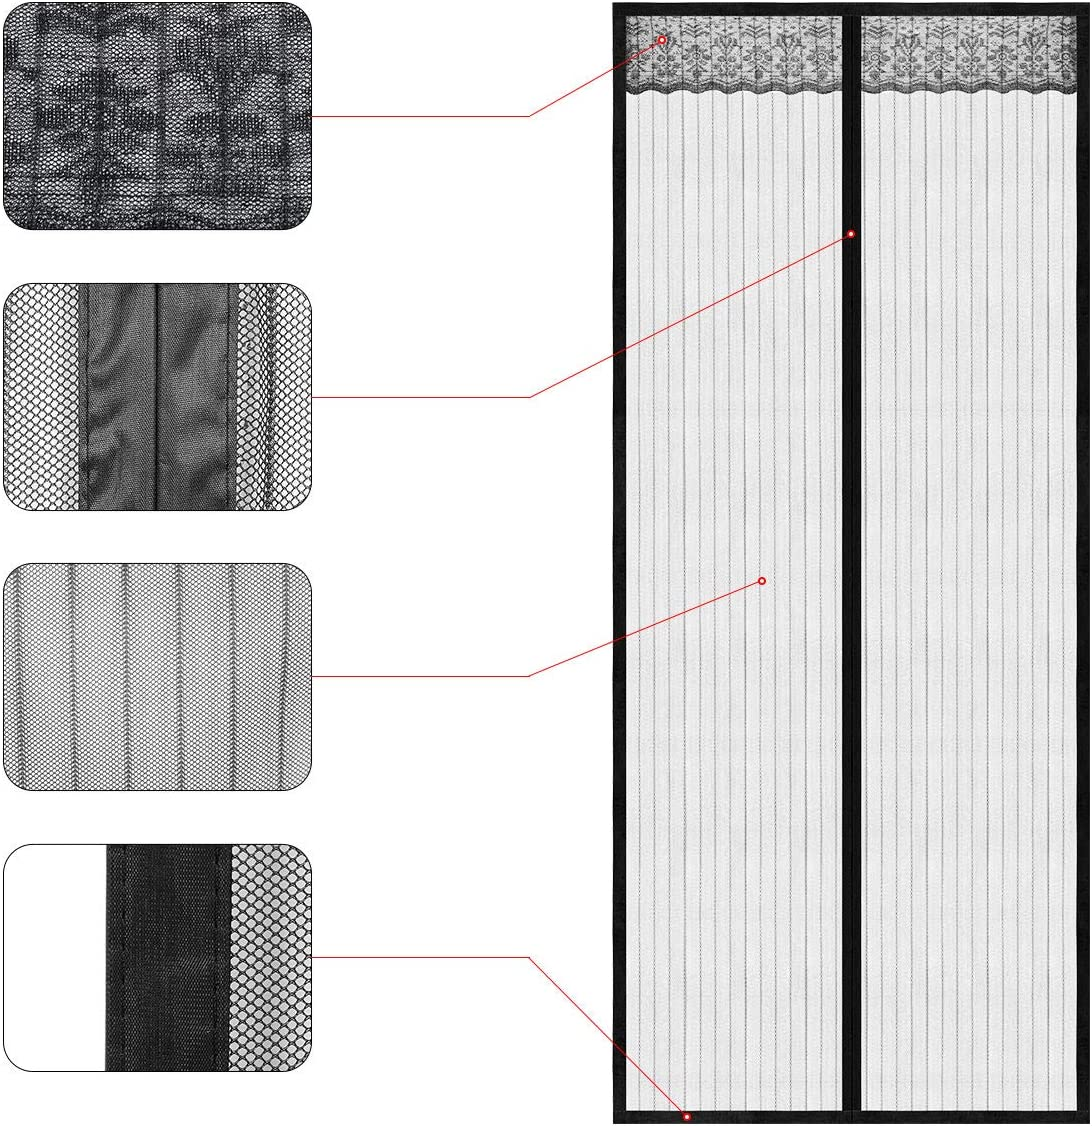 Super Strong Fly Mesh 28 Magnets from Top to Bottom Ultra Seal Magnets Close Automatically 100 x 210 cm Walk Through Easily Magnetic Screen Door